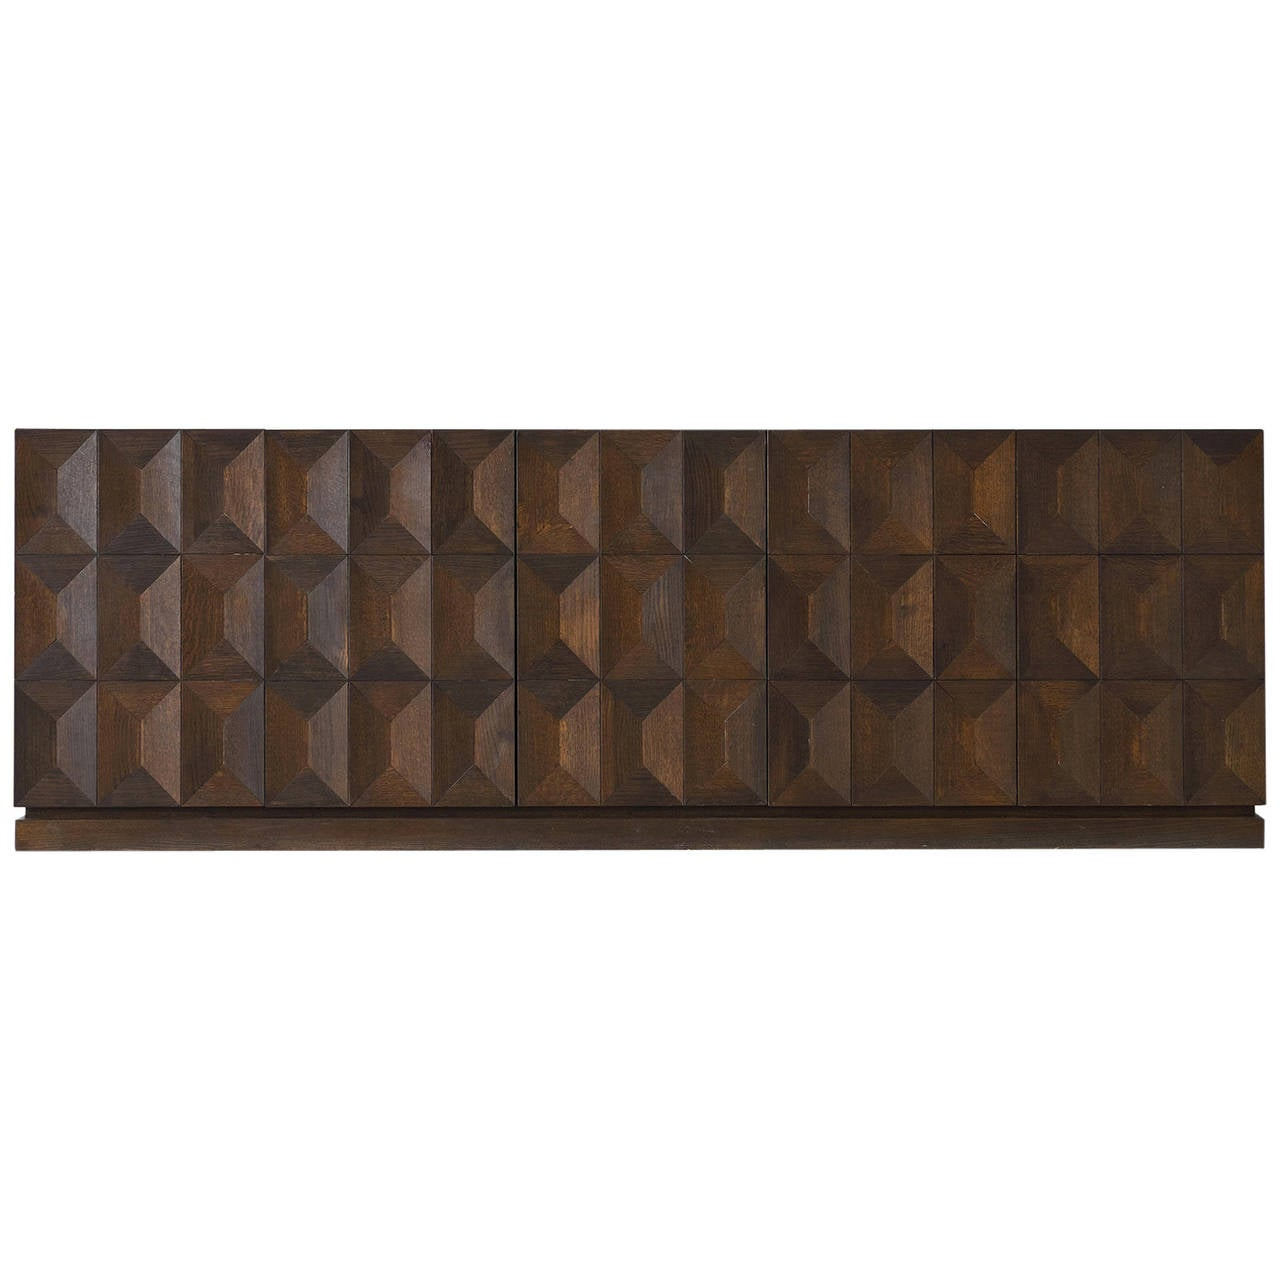 Brutalist Credenza In Stained Oak Belgium 1970s At 1stdibs